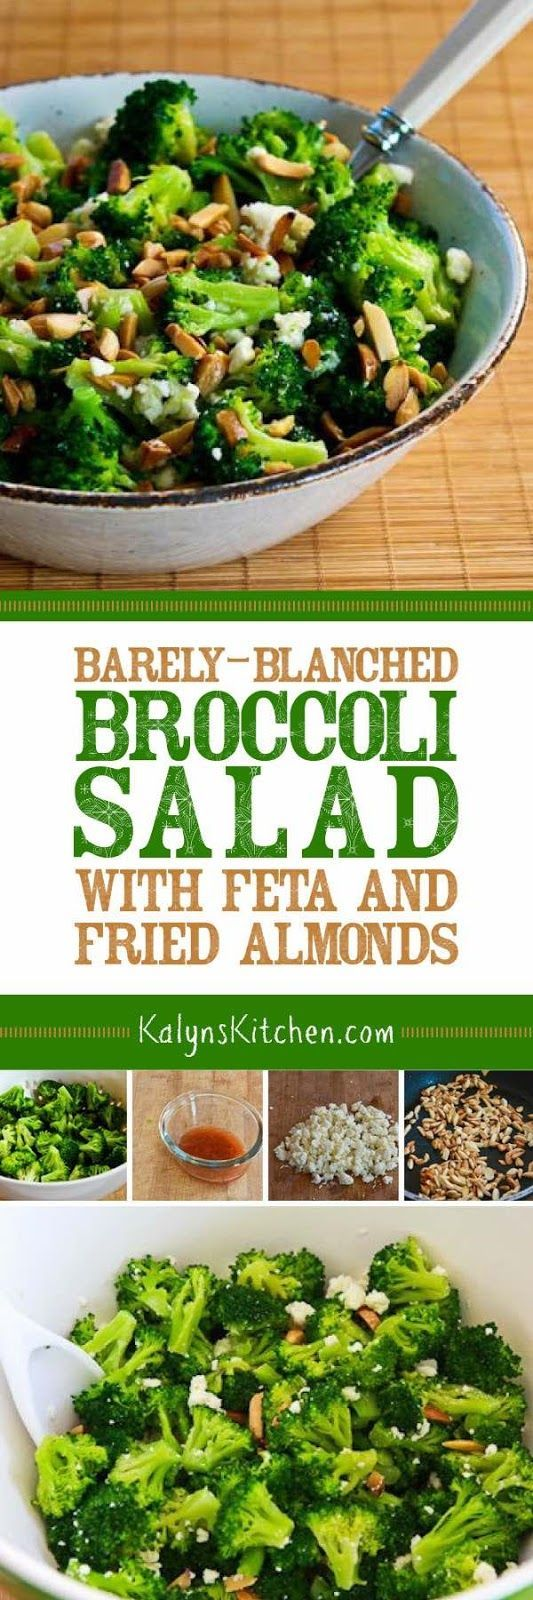 Barely Blanched Broccoli Salad With Feta And Fried Almonds Is A Unique Tasty Side